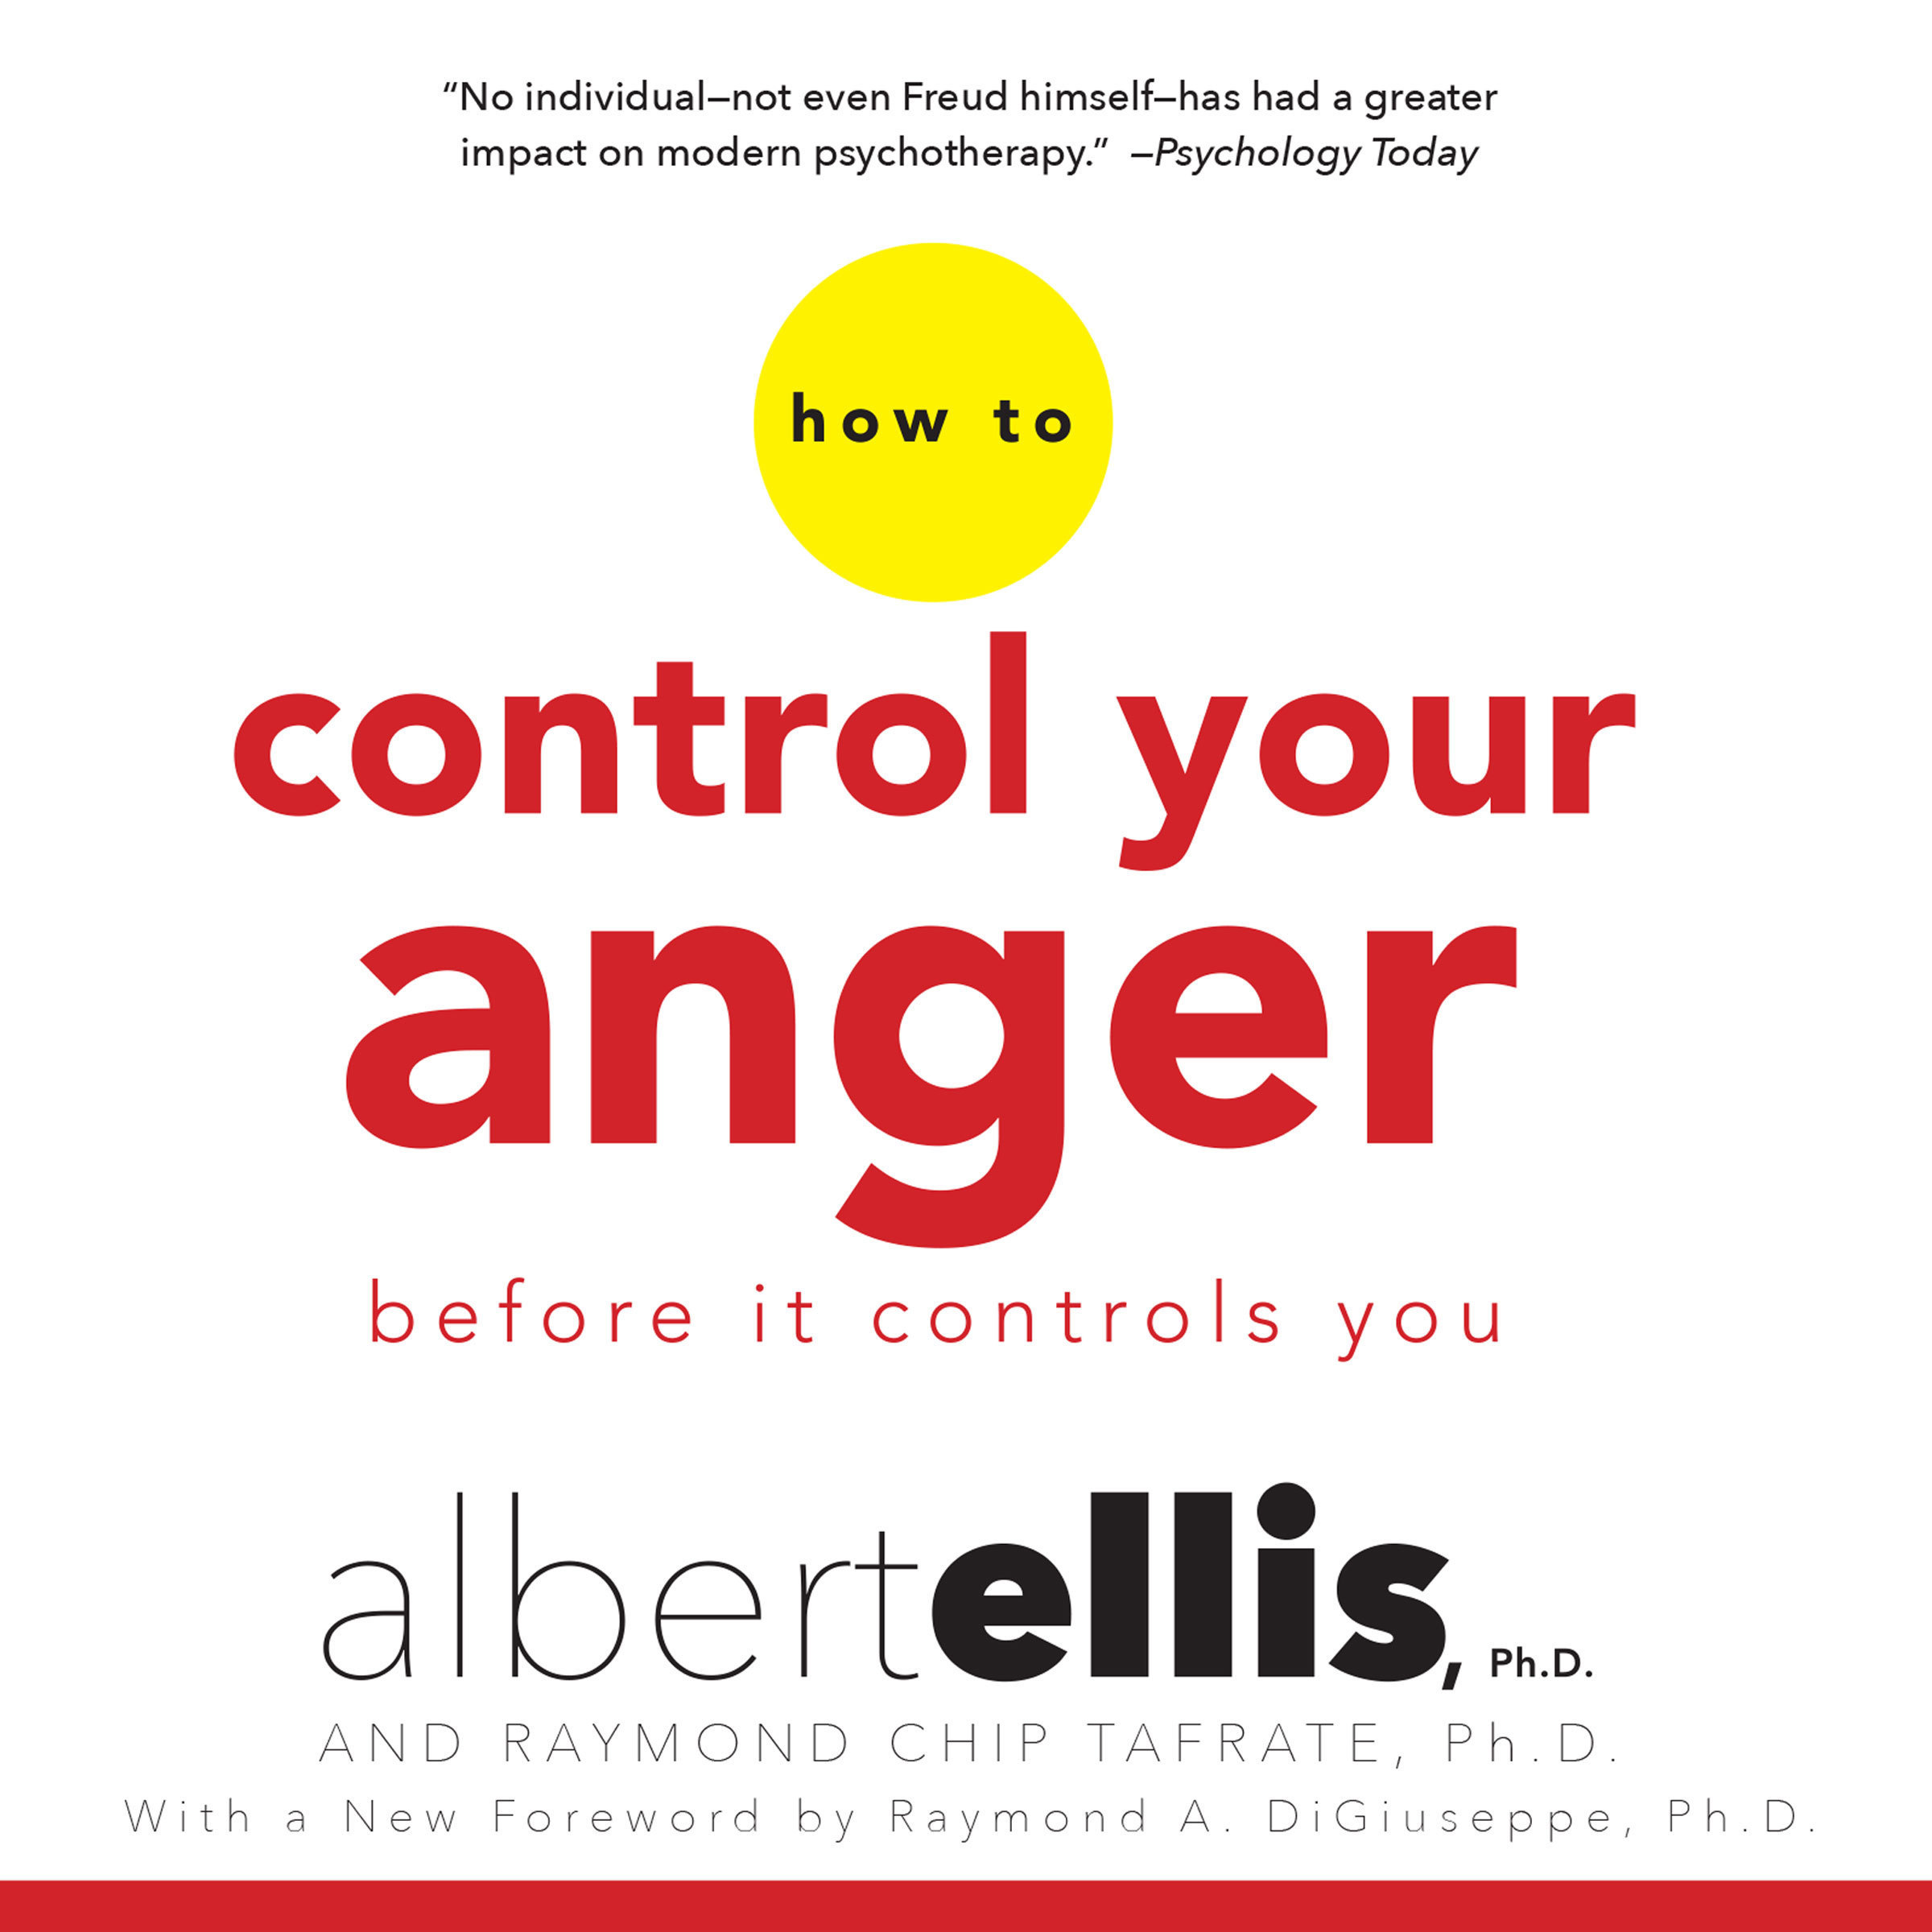 how to control your anger before it controls you audiobookhow to control your anger before it controls you audiobook, by raymond chip tafrate